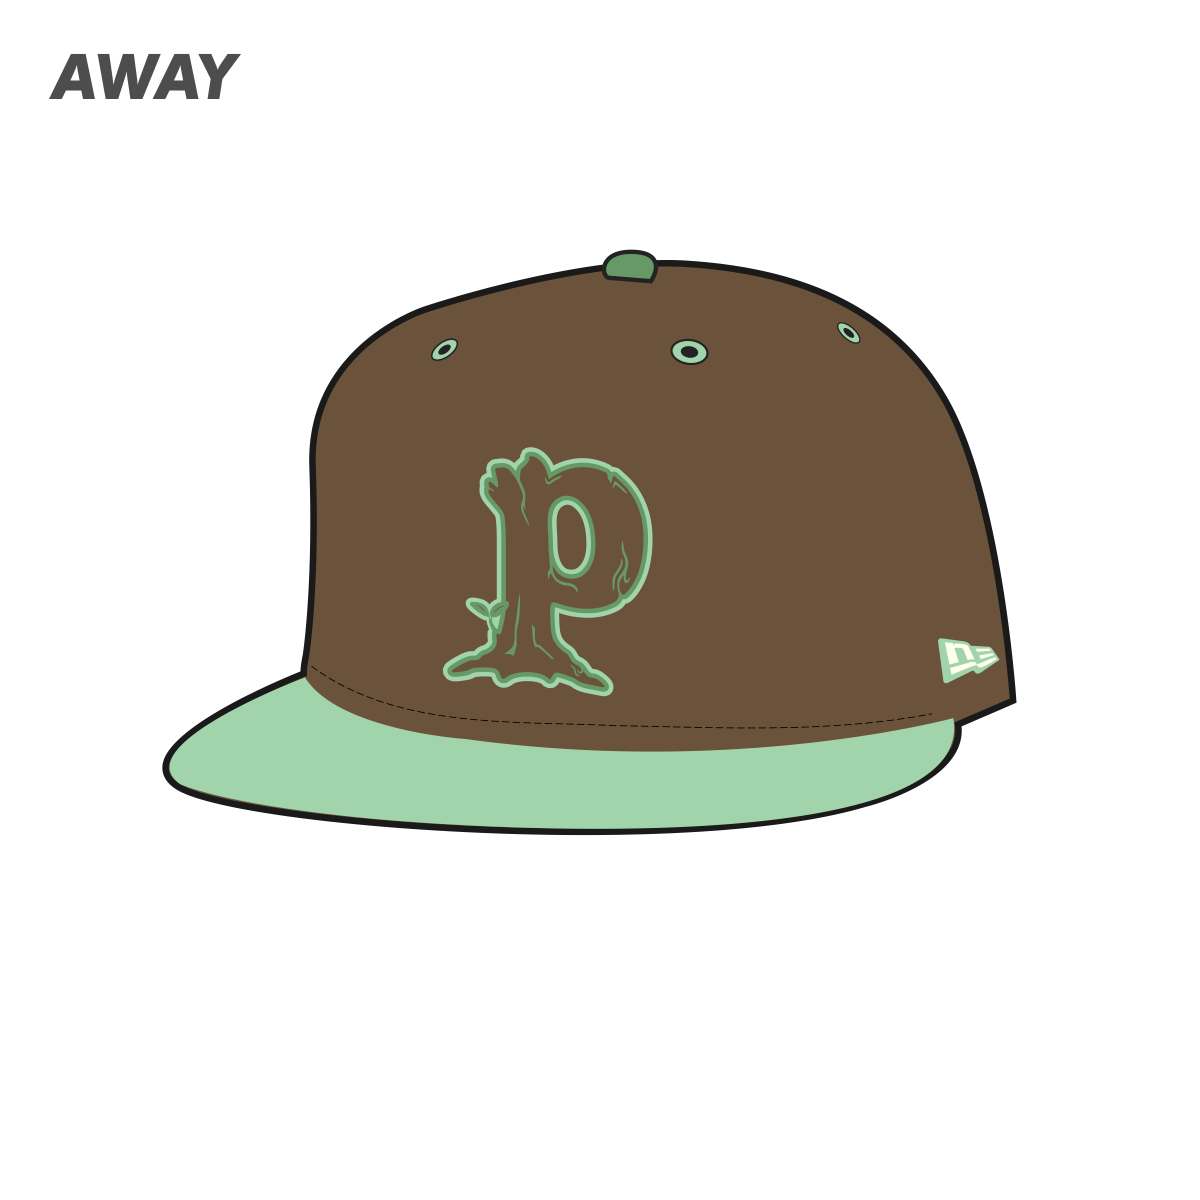 hat - away.png